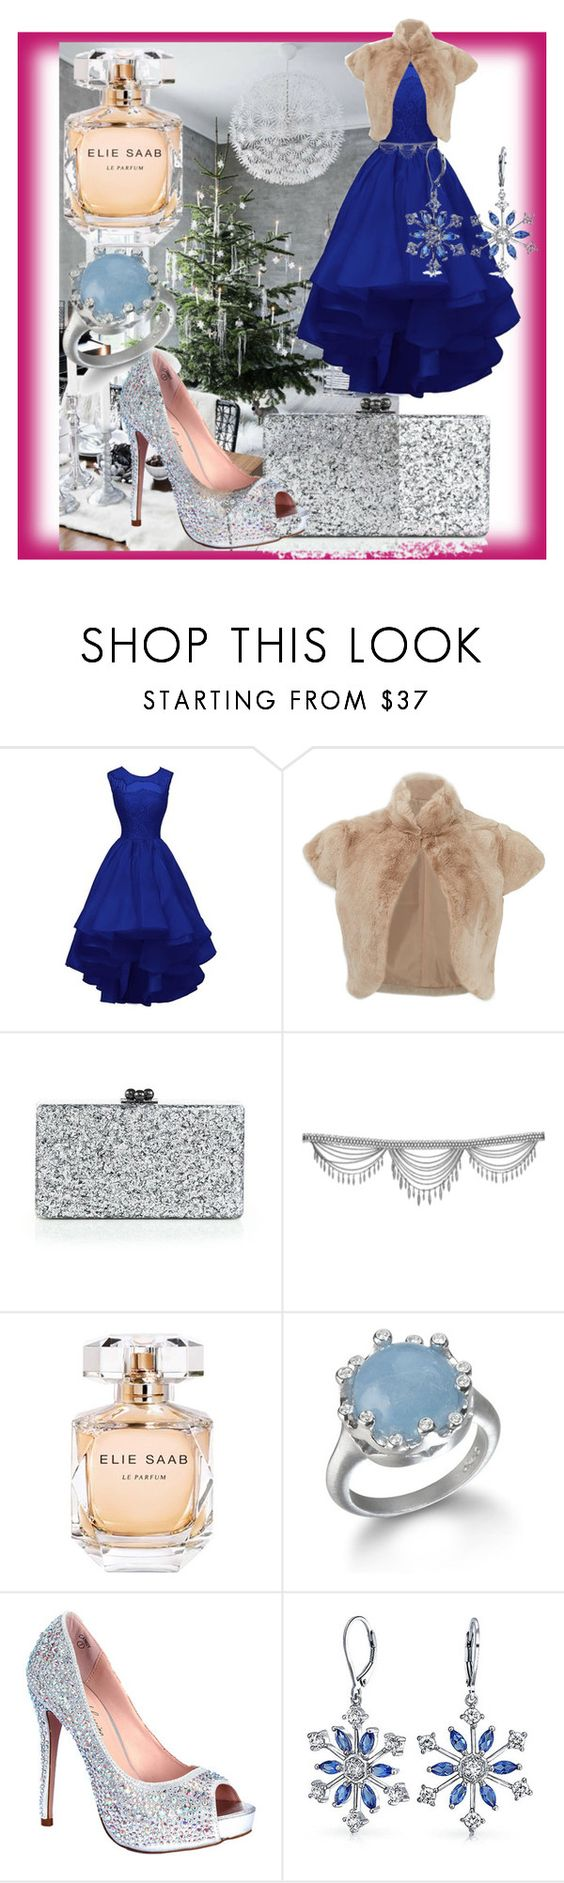 """Xmas outfit - the cool colors"" by theladyintheblackdress ❤ liked on Polyvore featuring Adrienne Landau, Edie Parker, Elie Saab, Lauren Lorraine and Bling Jewelry"